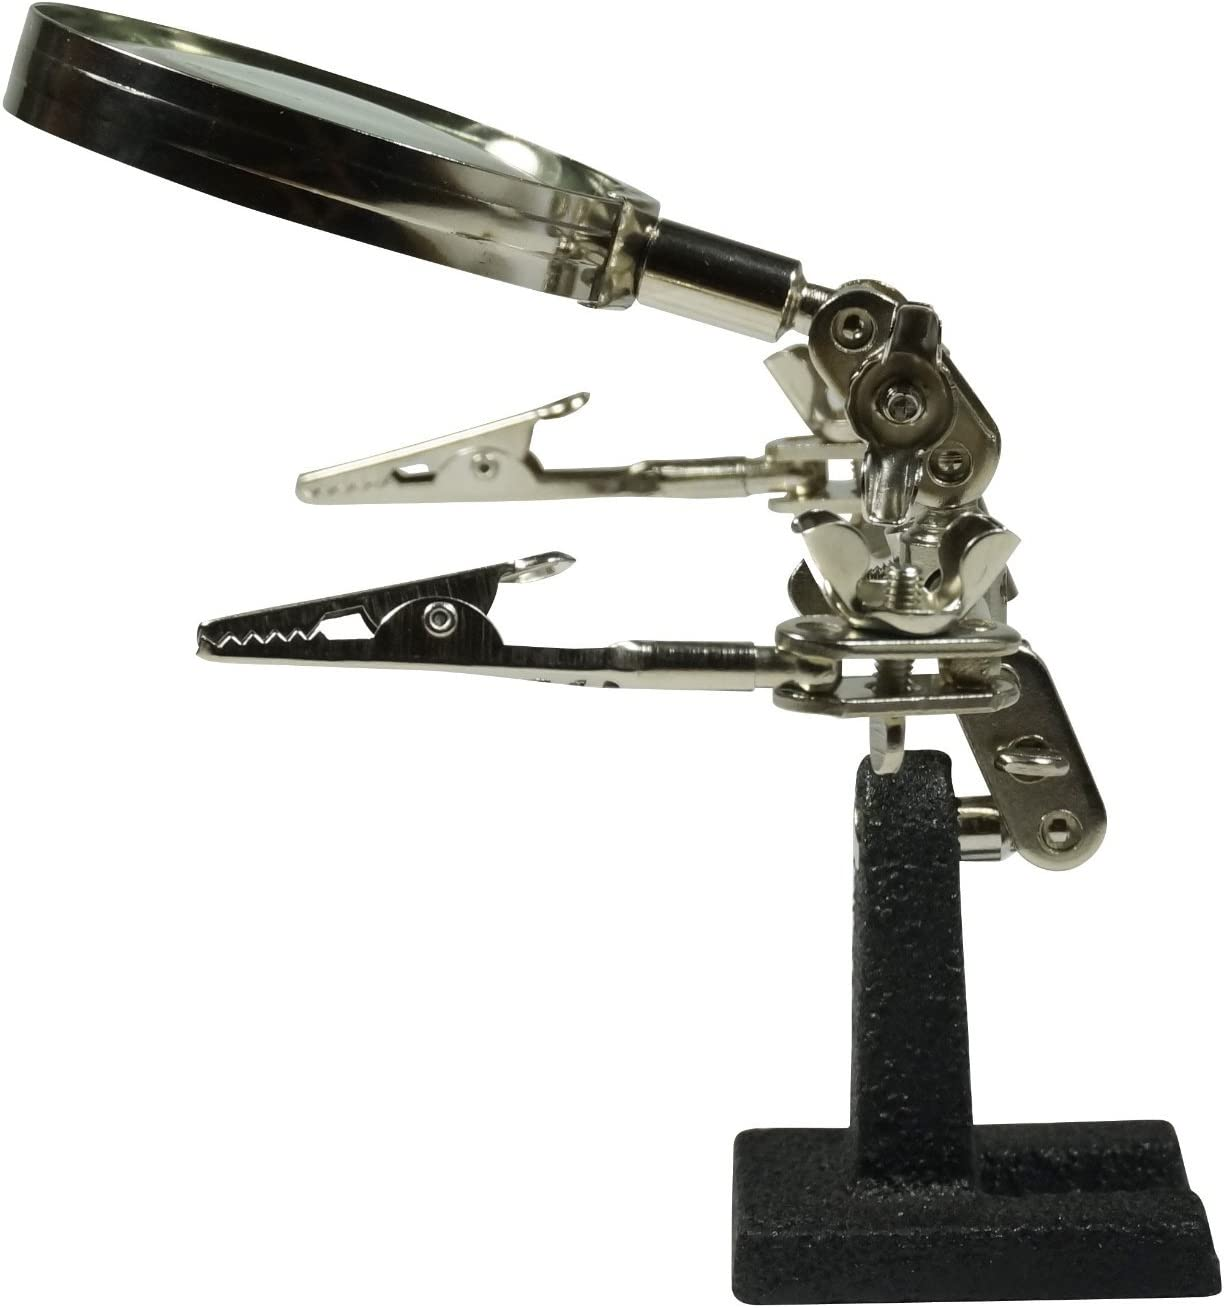 Helping Hand Hands Tool Jewelry Repair Fly Soldering Iron Clamp Magnifying Glass by EX ELECTRONIX EXPRESS